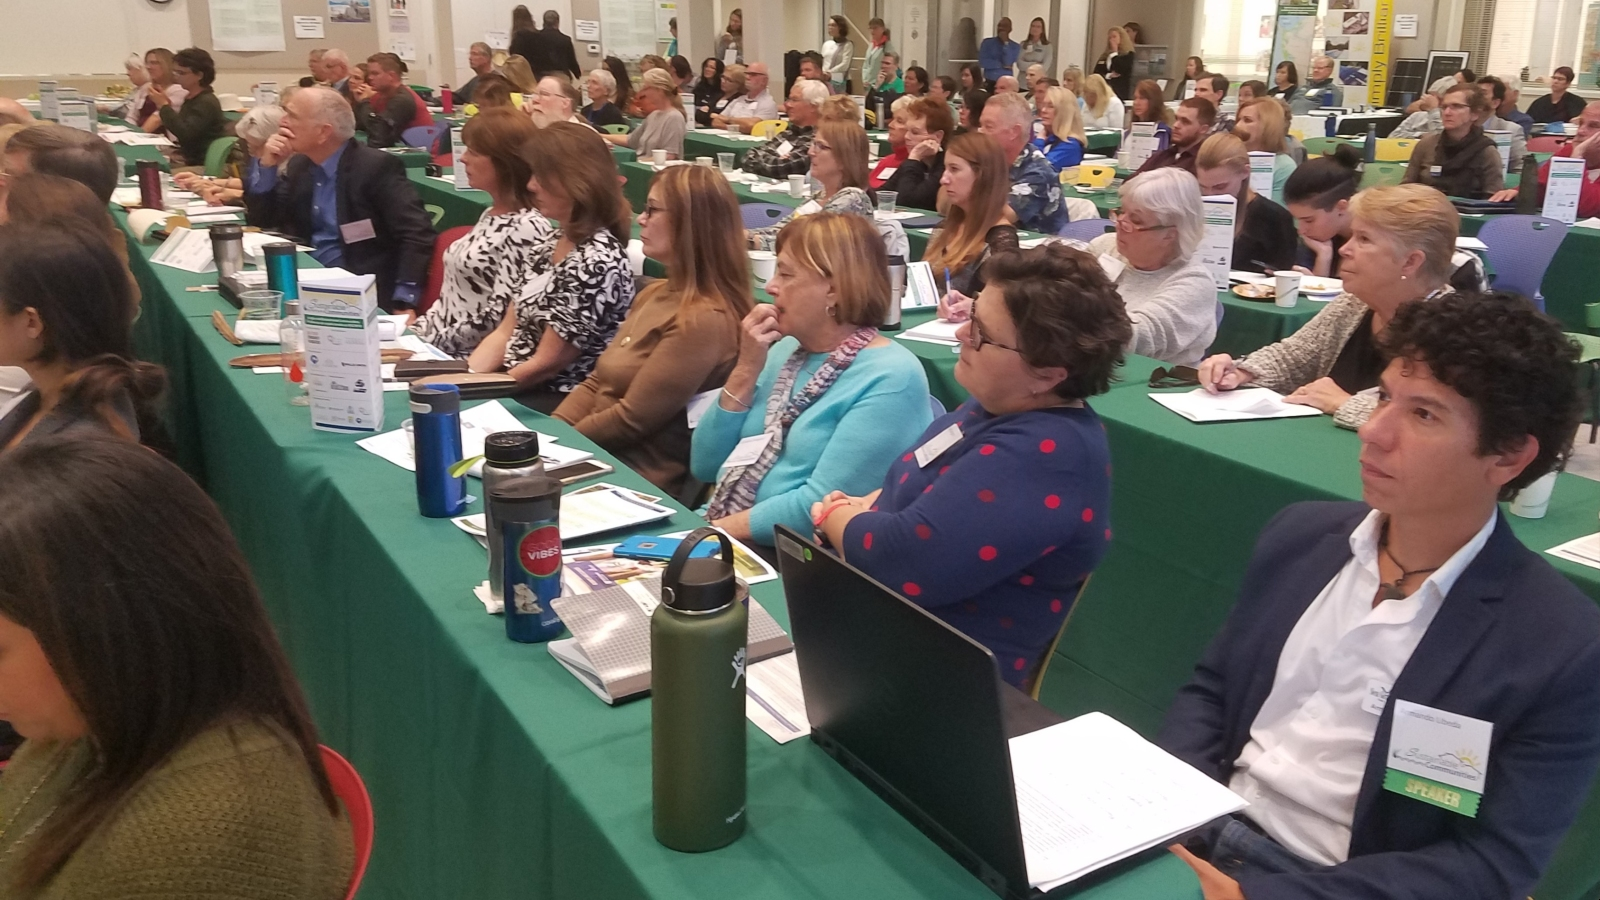 Audience members watch a presentation at the 2018 Sustainable Communities Workshop in Sarasota, Florida